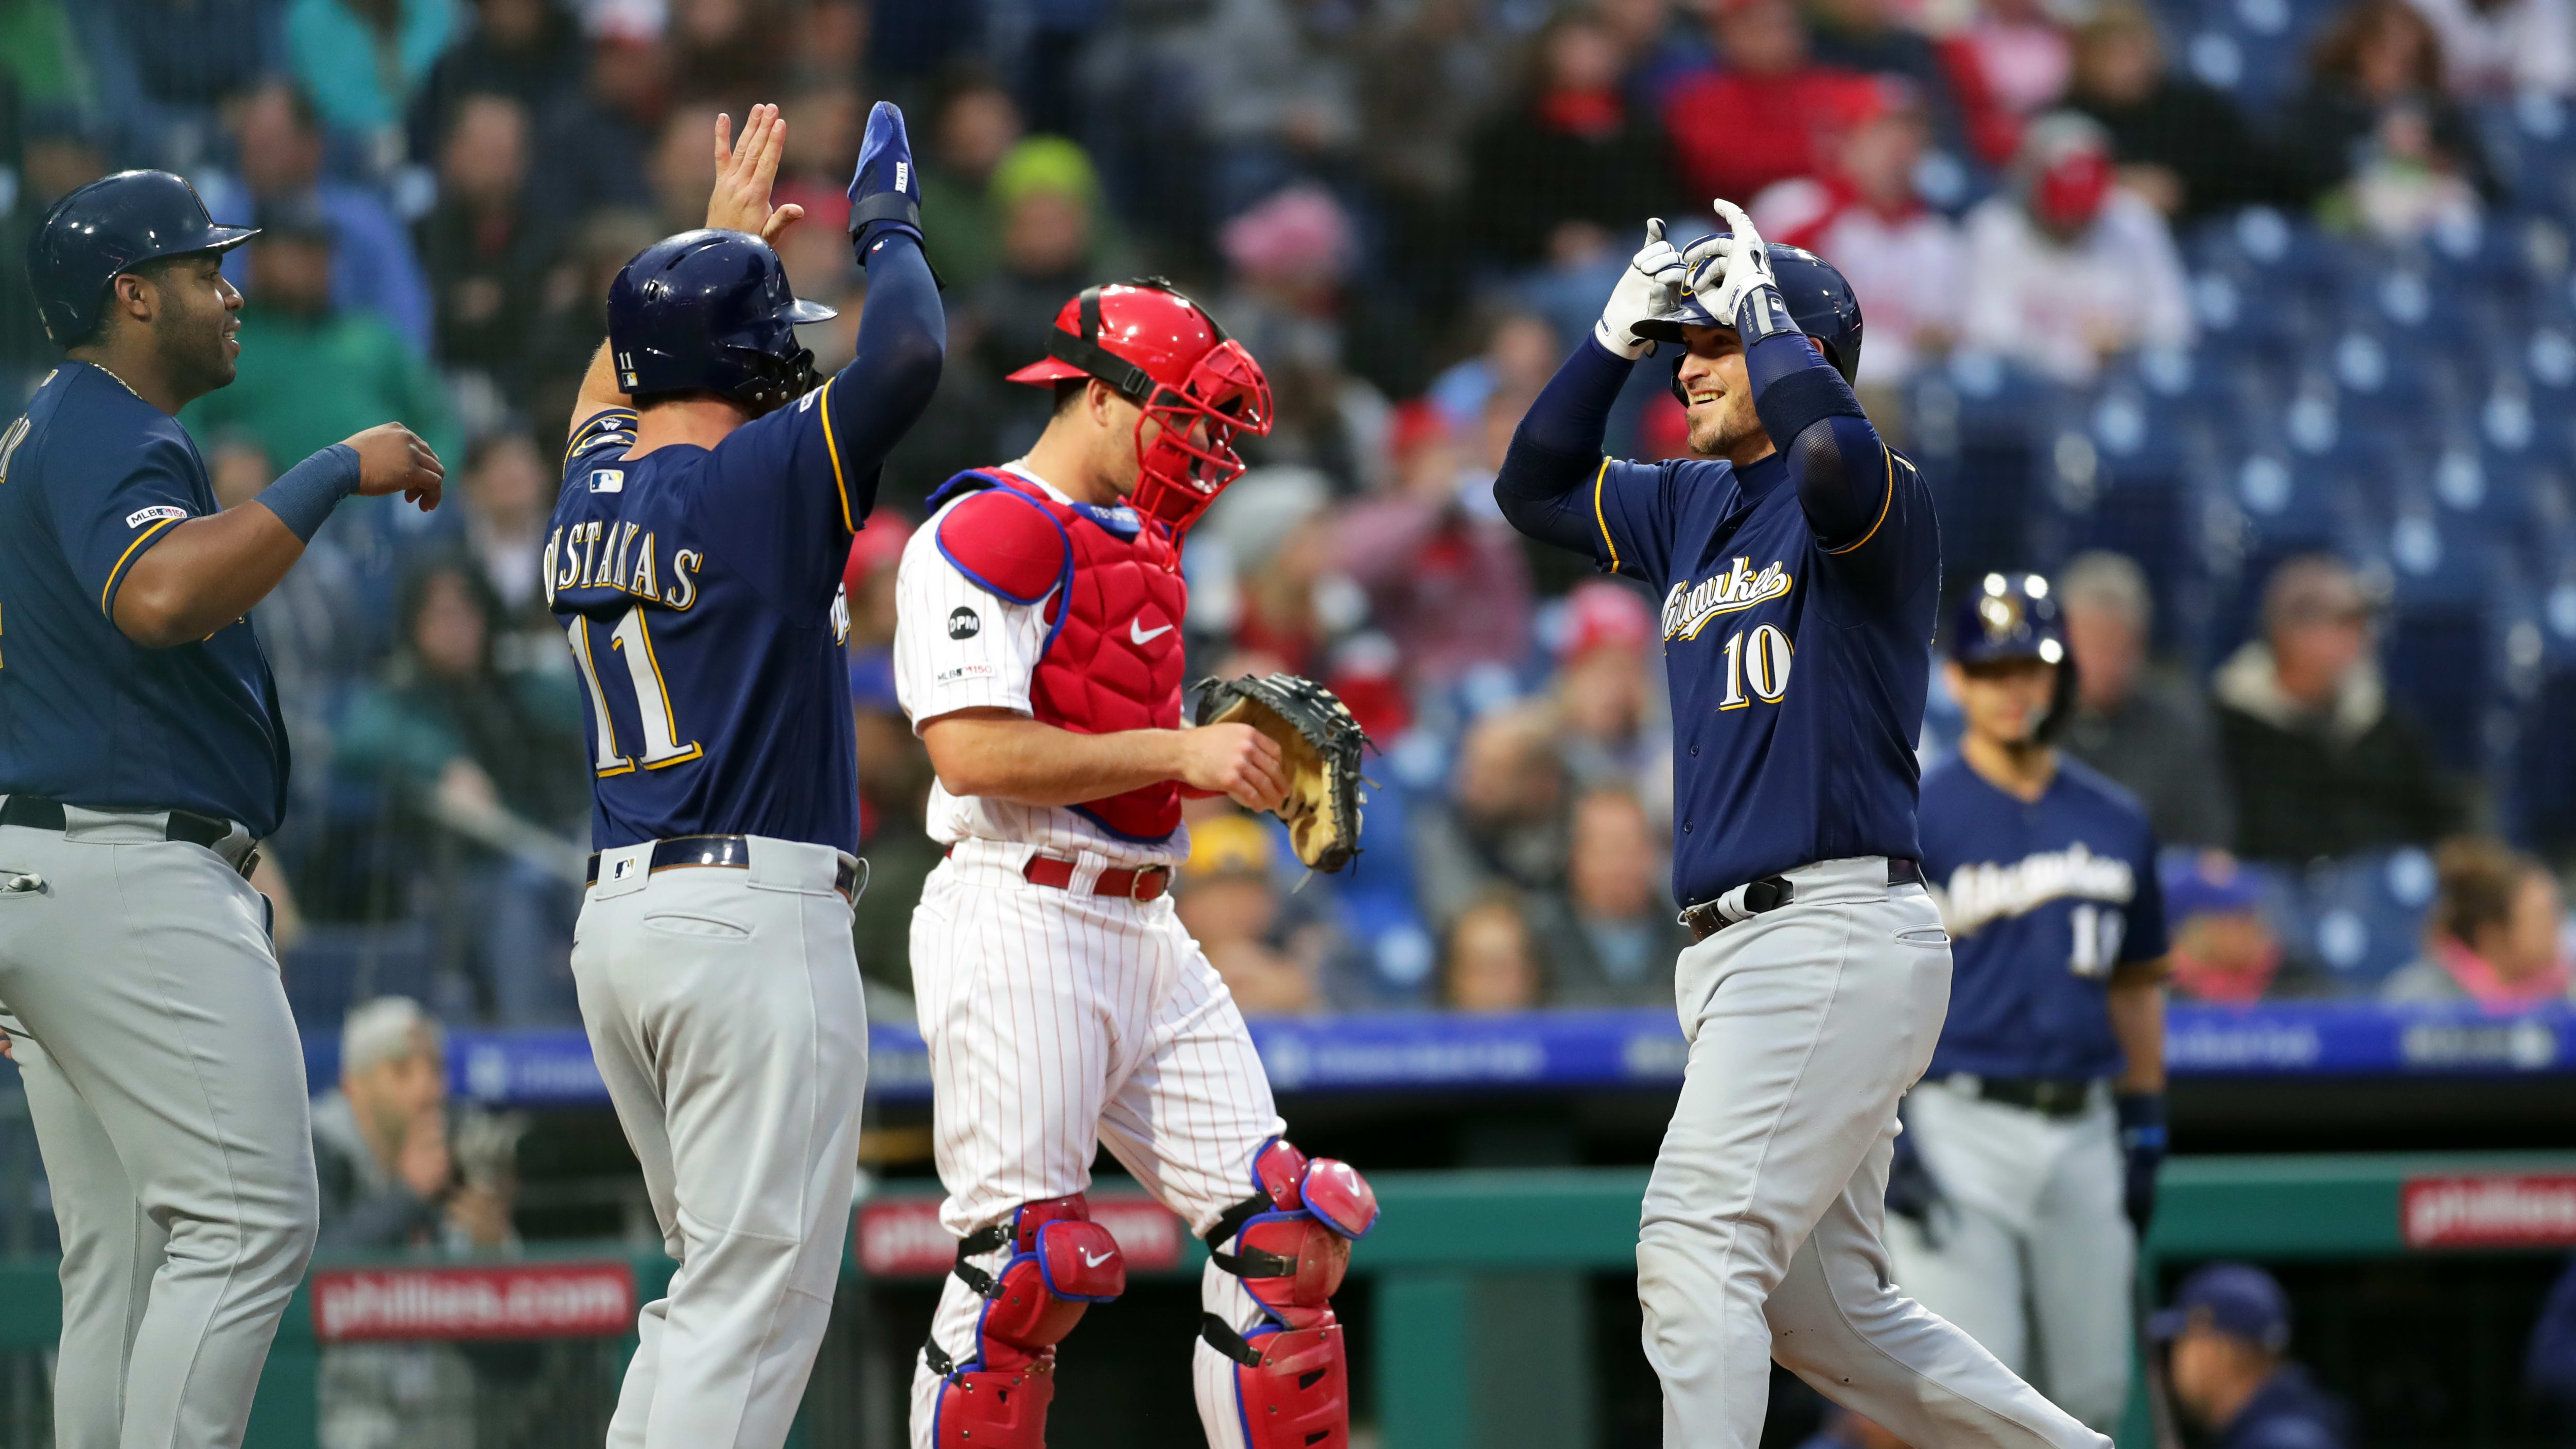 PHILADELPHIA, PA - MAY 14: Yasmani Grandal #10 of the Milwaukee Brewers is greeted at home plate by Mike Moustakas #11 and Jesus Aguilar #24 after hitting a three-run home run in the second inning during a game against the Philadelphia Phillies at Citizens Bank Park on May 14, 2019 in Philadelphia, Pennsylvania. (Photo by Hunter Martin/Getty Images)